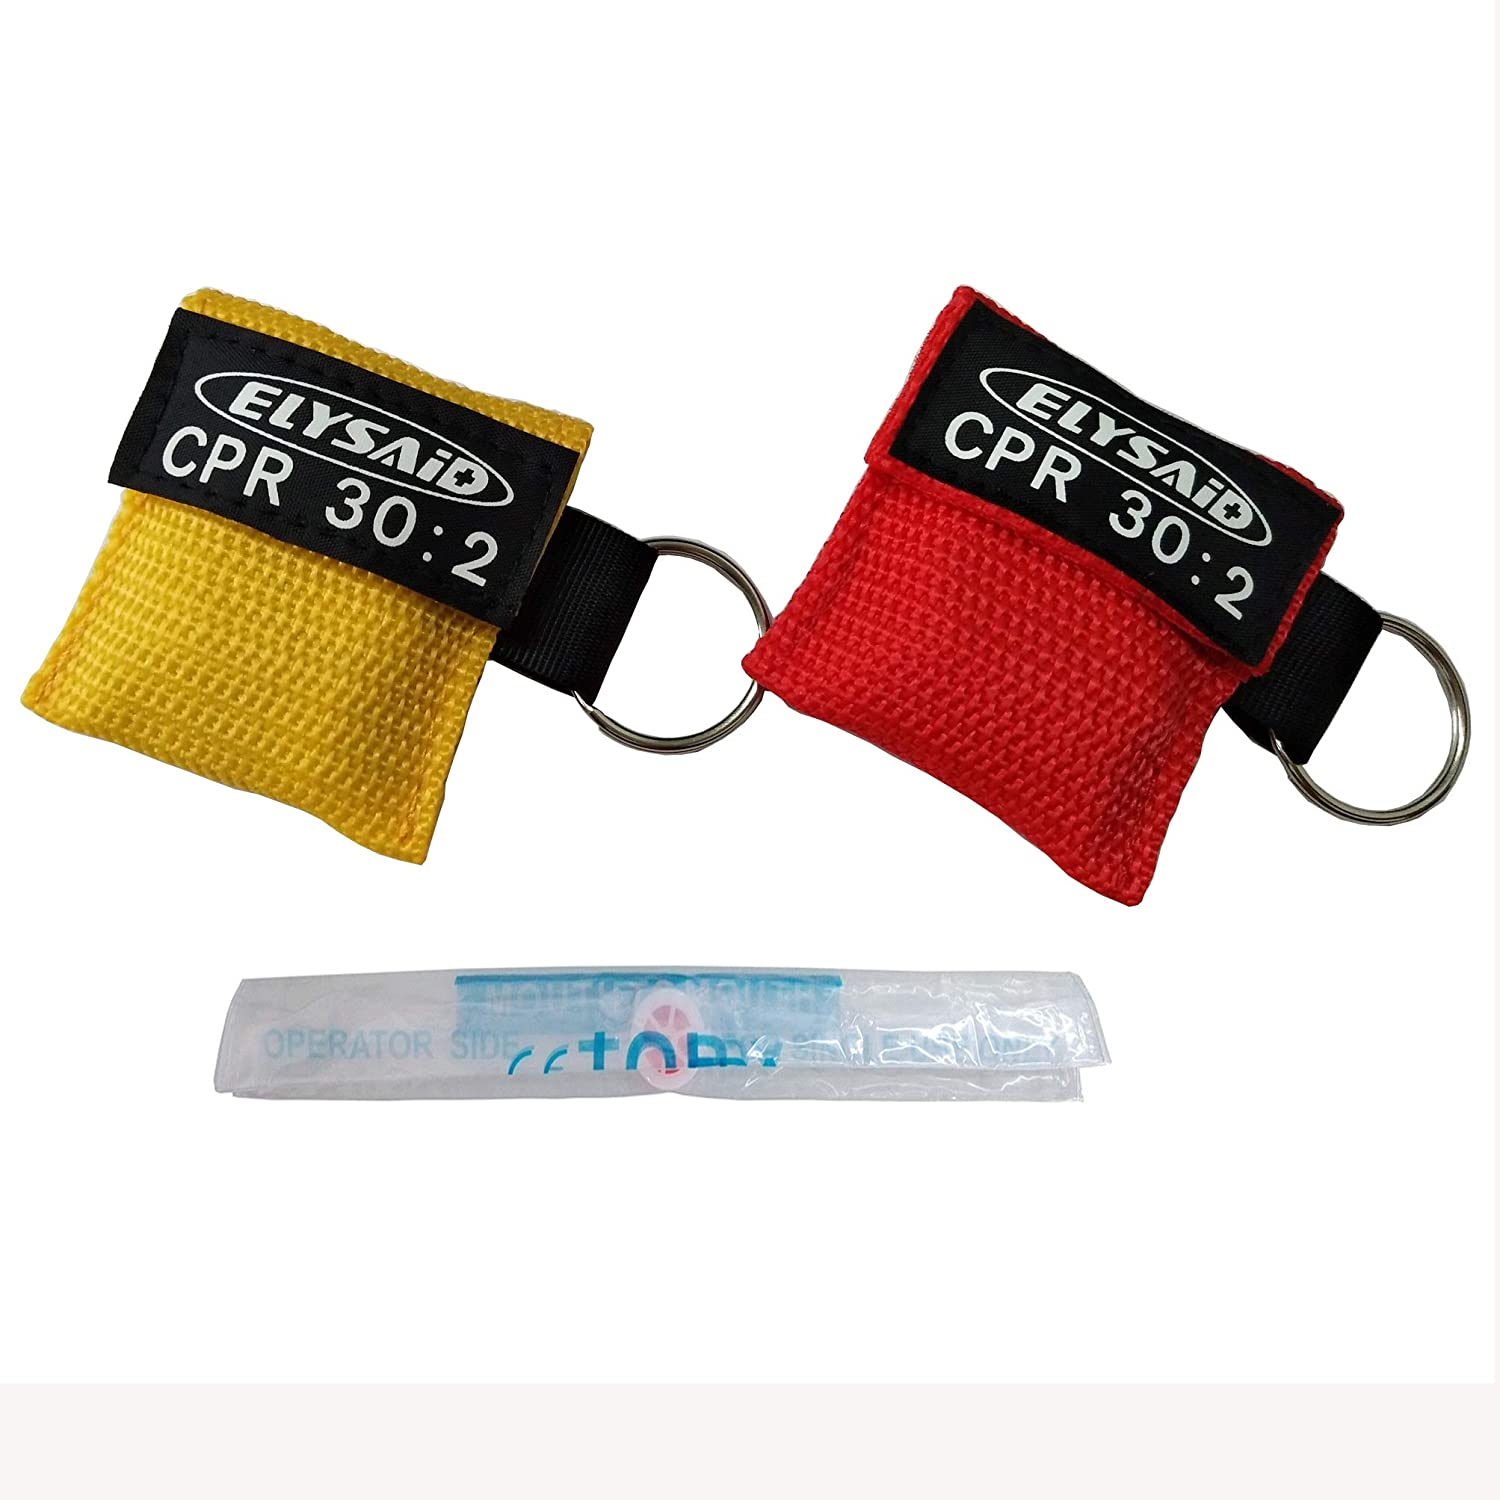 2pcs/lot CPR MASK WITH KEYCHAIN CPR FACE SHIELD AED RED&YELLOW POUCH CPR 30:2